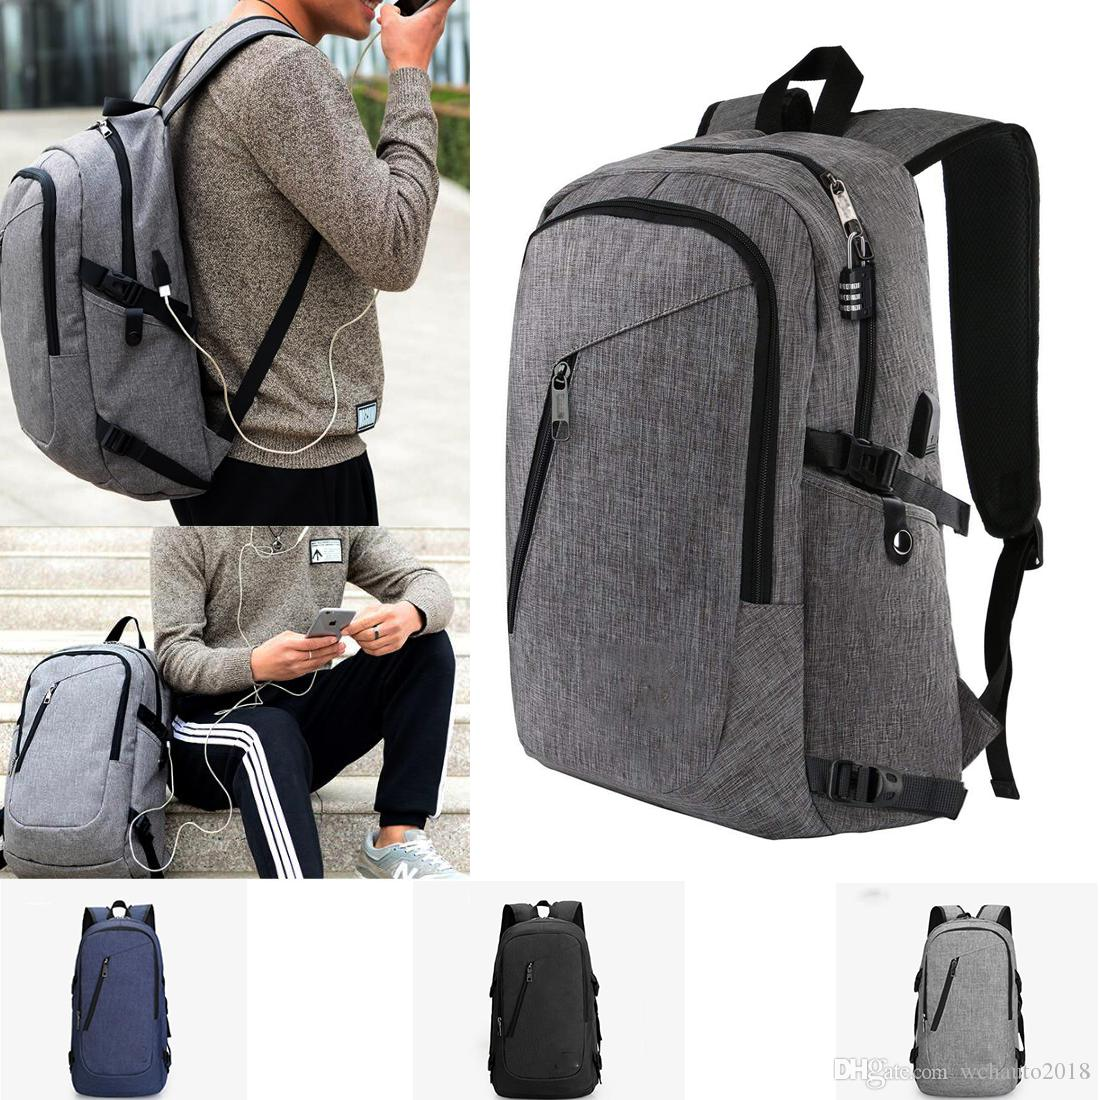 High Quality Business Laptop Backpack with USB Charging Port Fits ... 7038b28a92881